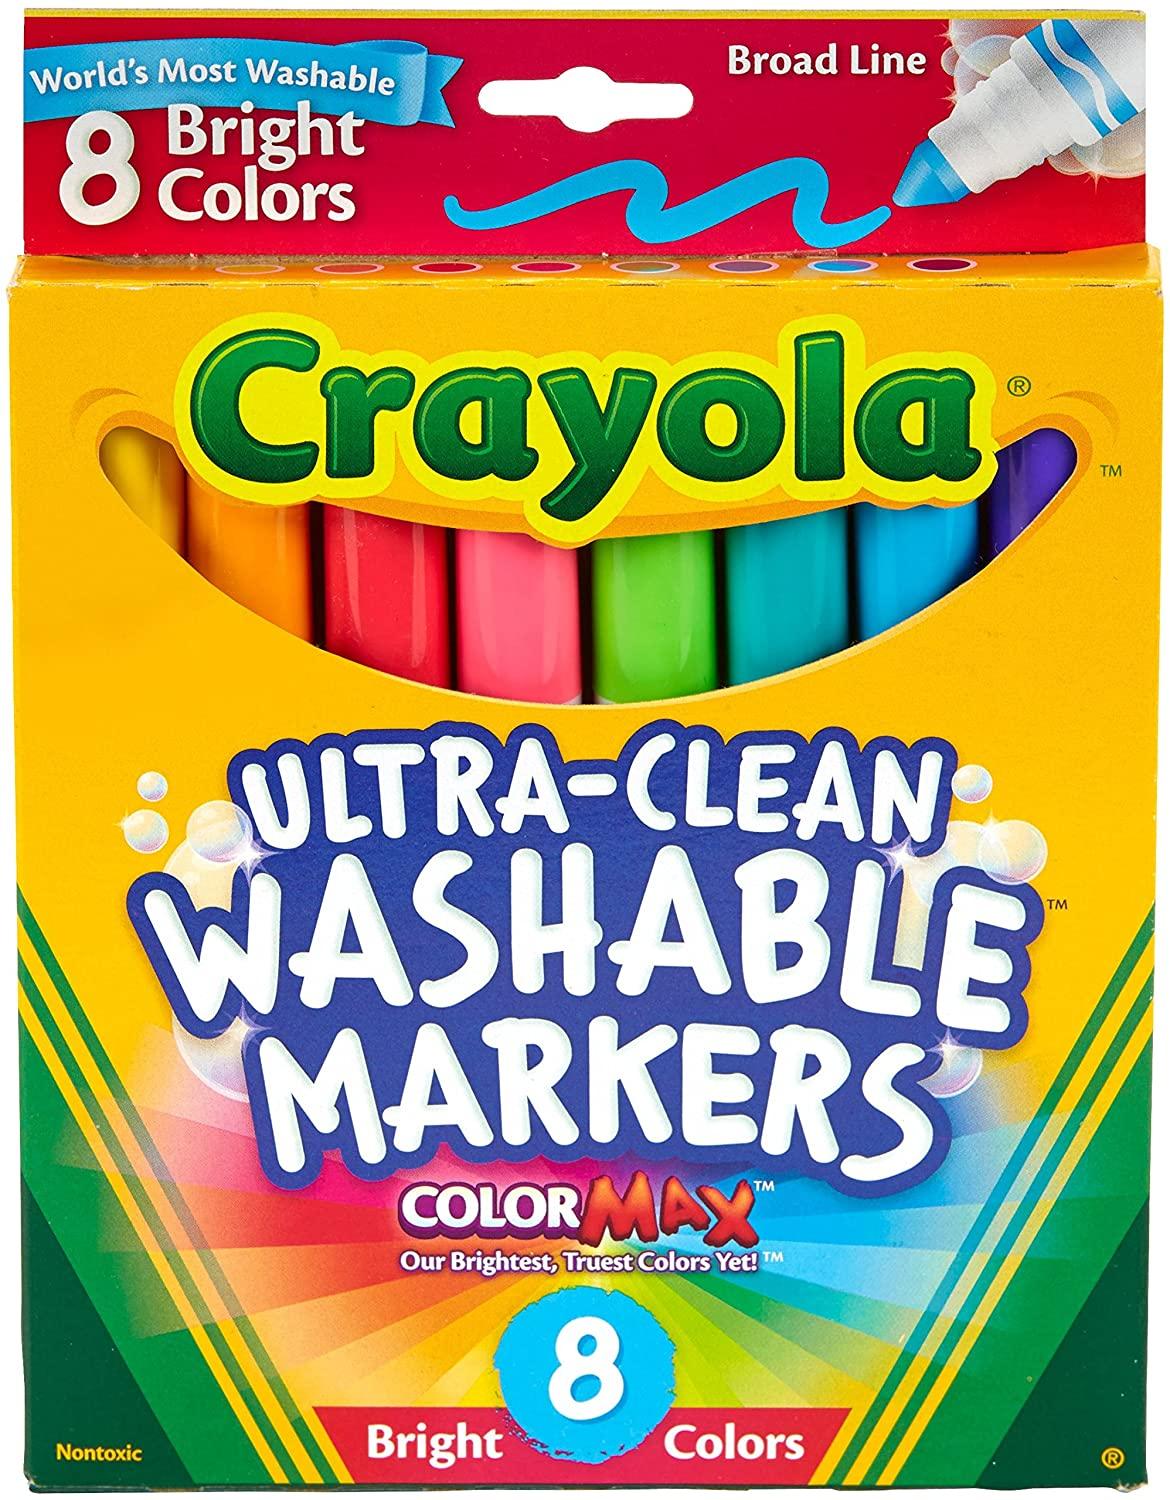 Crayola 8 Count Washable Bright Markers Binney & Smith 58-7819